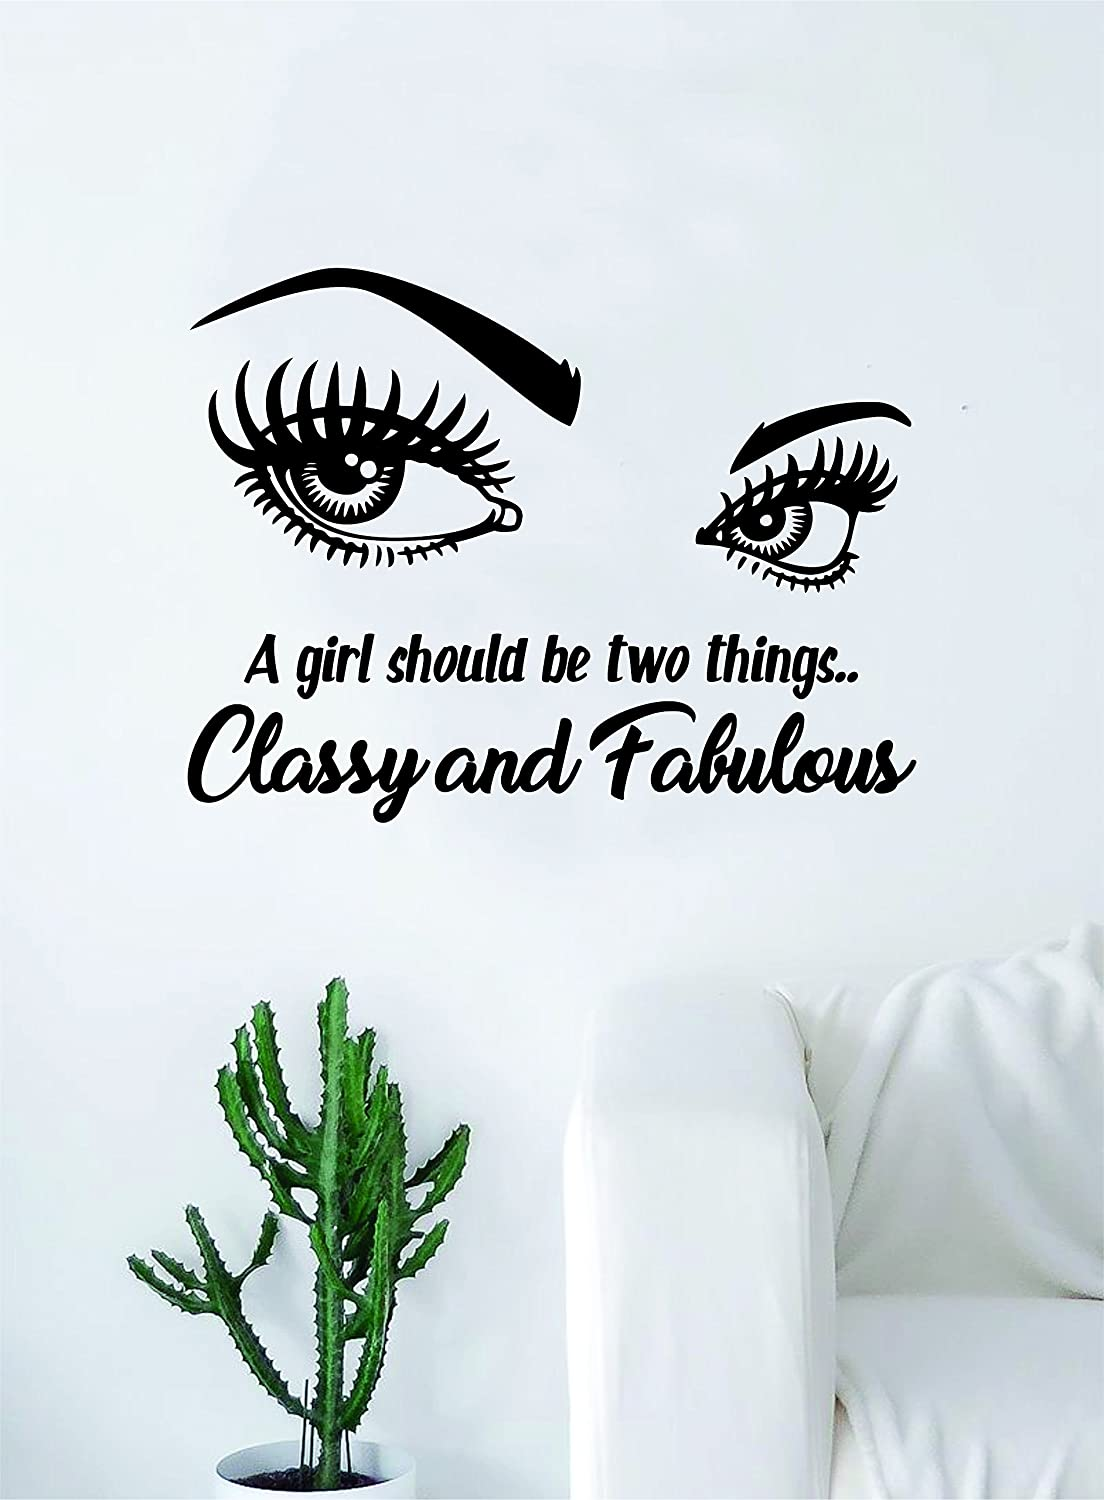 Classy and fabulous v2 quote beautiful design decal sticker wall vinyl decor art eyes coco chanel eyebrows eyelashes lashes make up cosmetics beauty salon